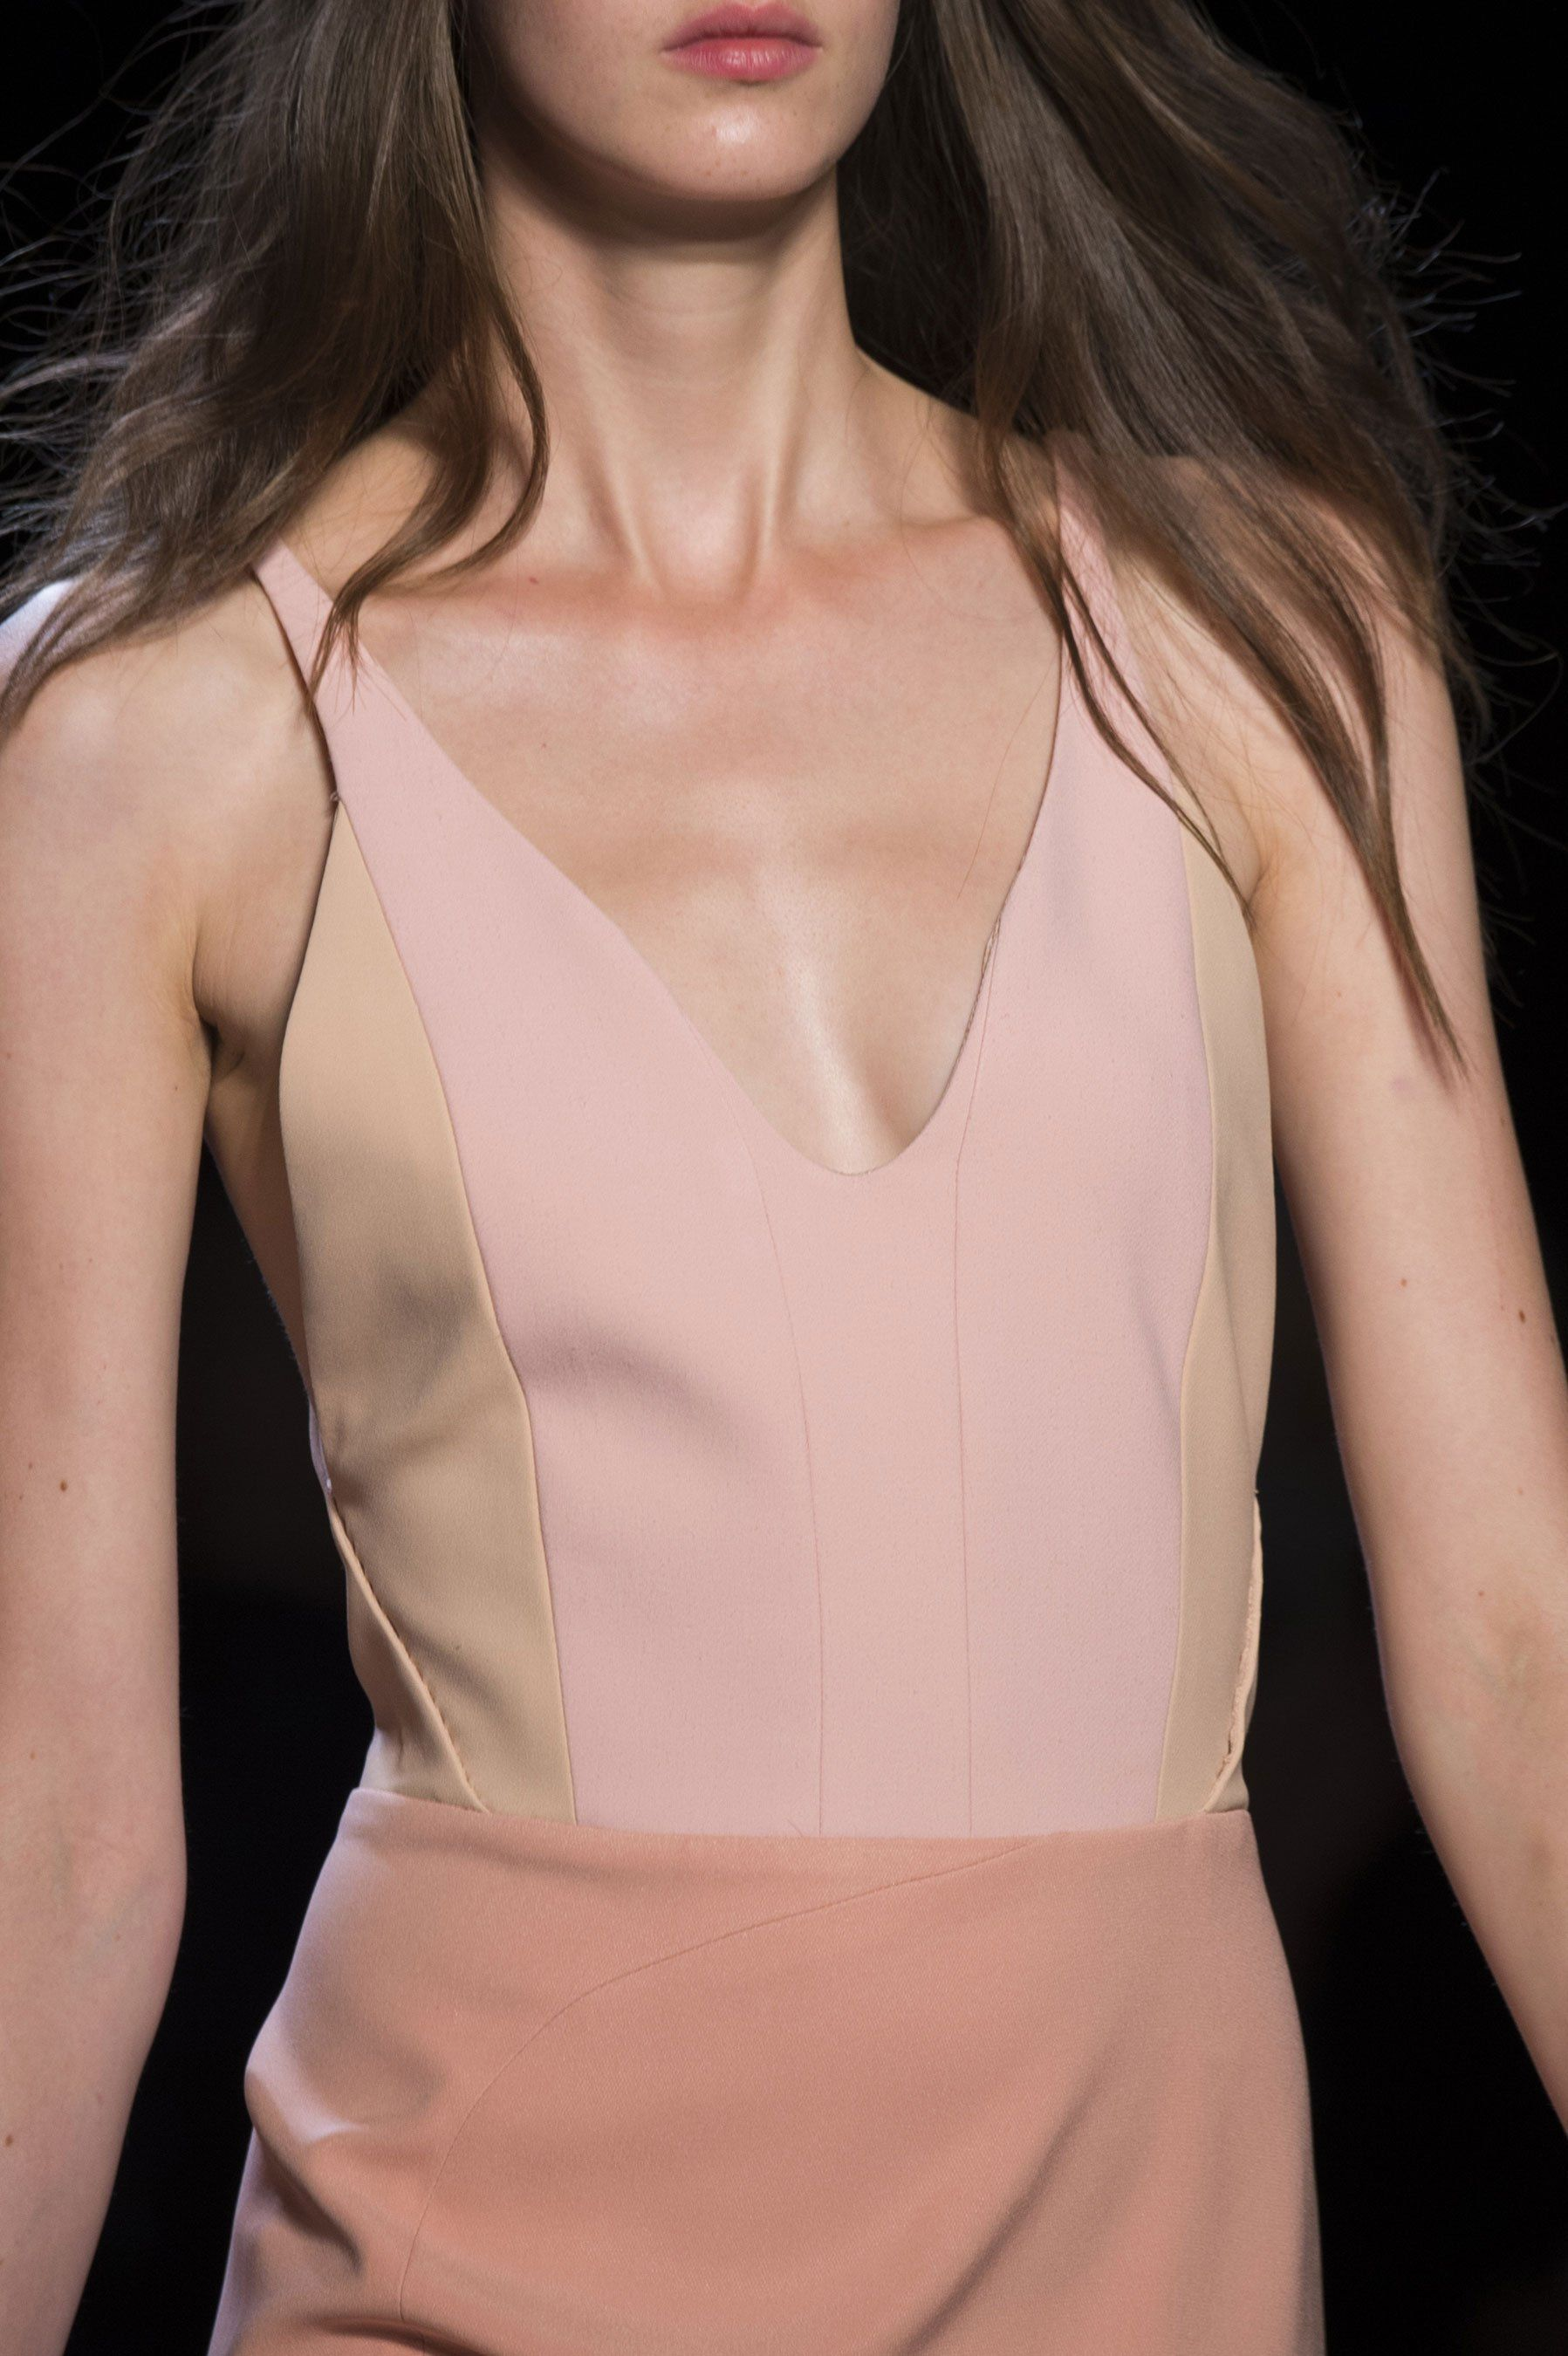 Narciso Rodriguez Spring 2015 _ | H E R | Pinterest | Pink, Rosas y ...